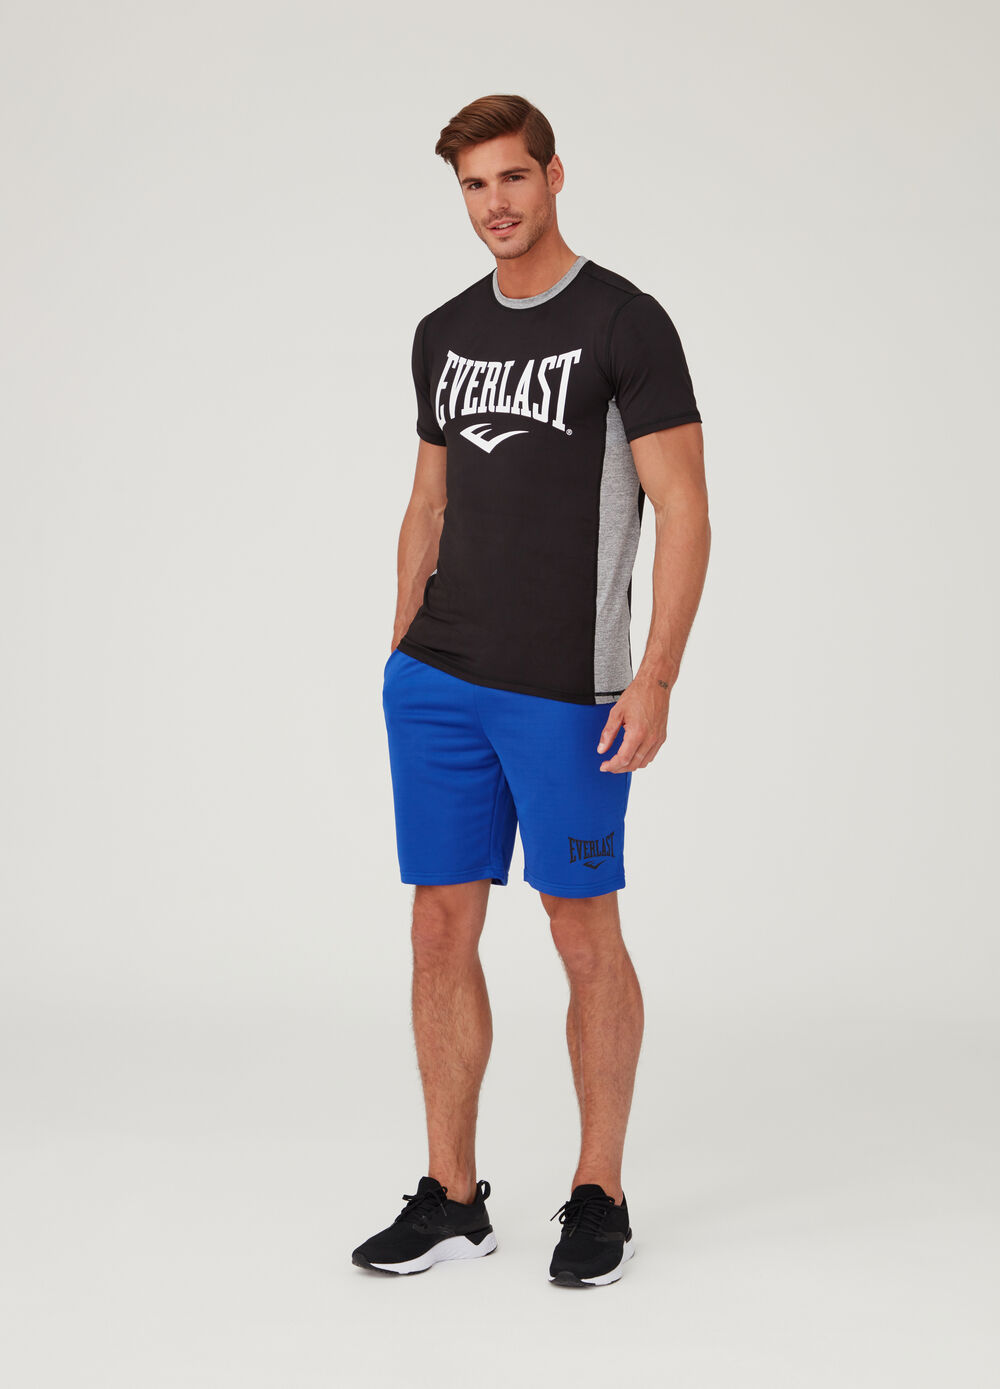 Stretch shorts with Everlast print